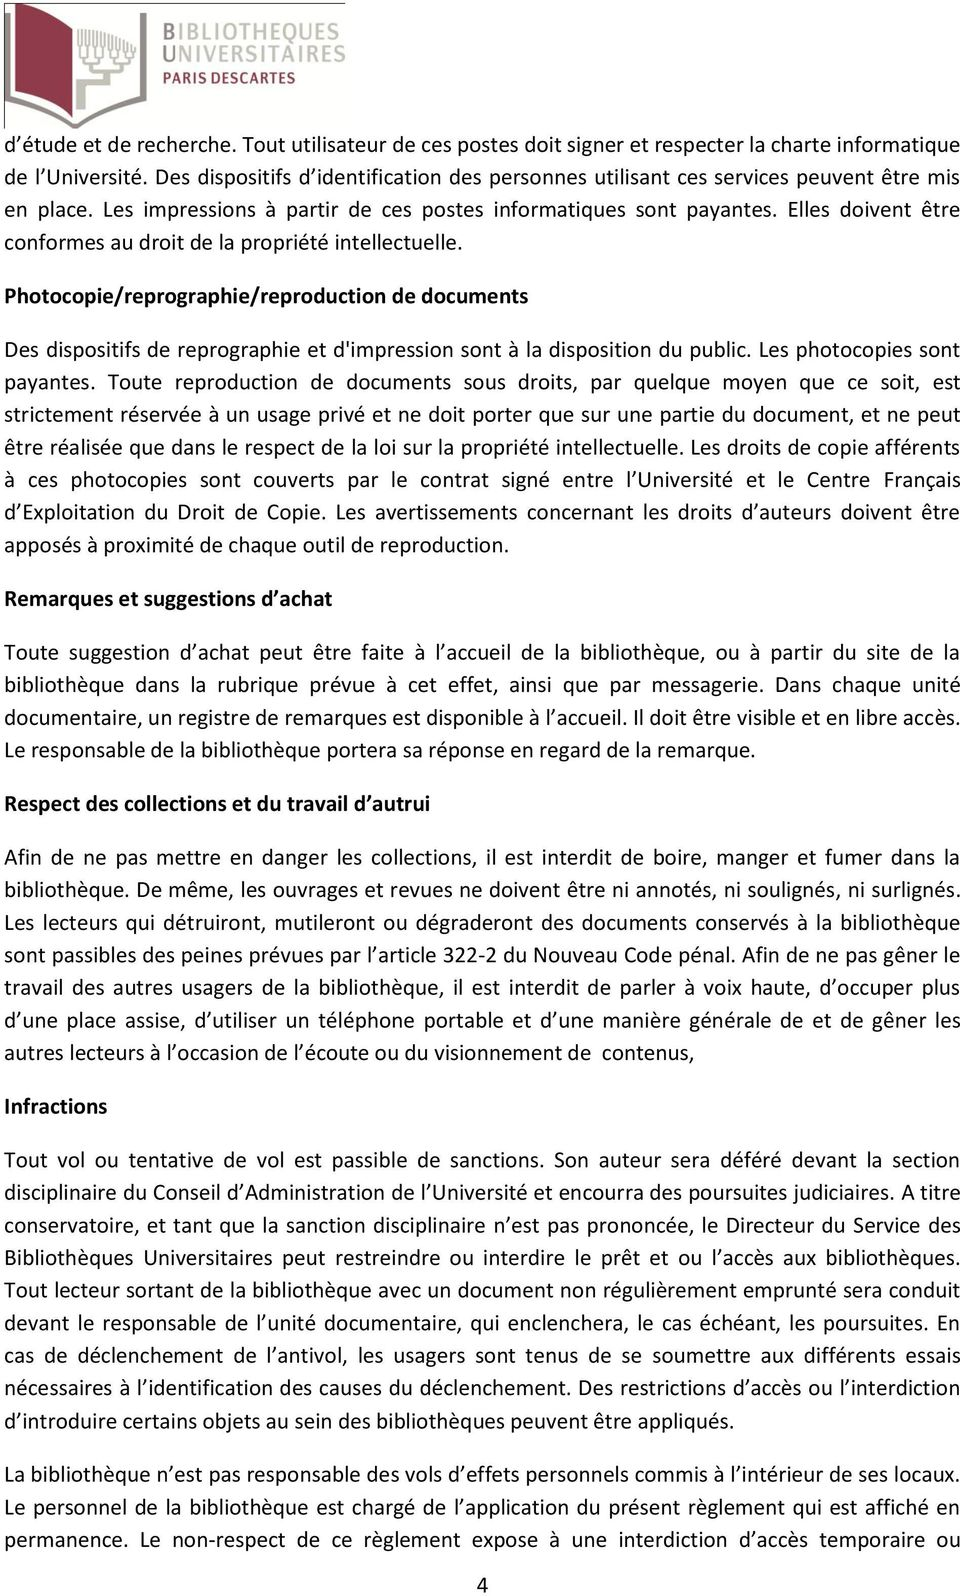 Elles doivent être conformes au droit de la propriété intellectuelle. Photocopie/reprographie/reproduction de documents Des dispositifs de reprographie et d'impression sont à la disposition du public.